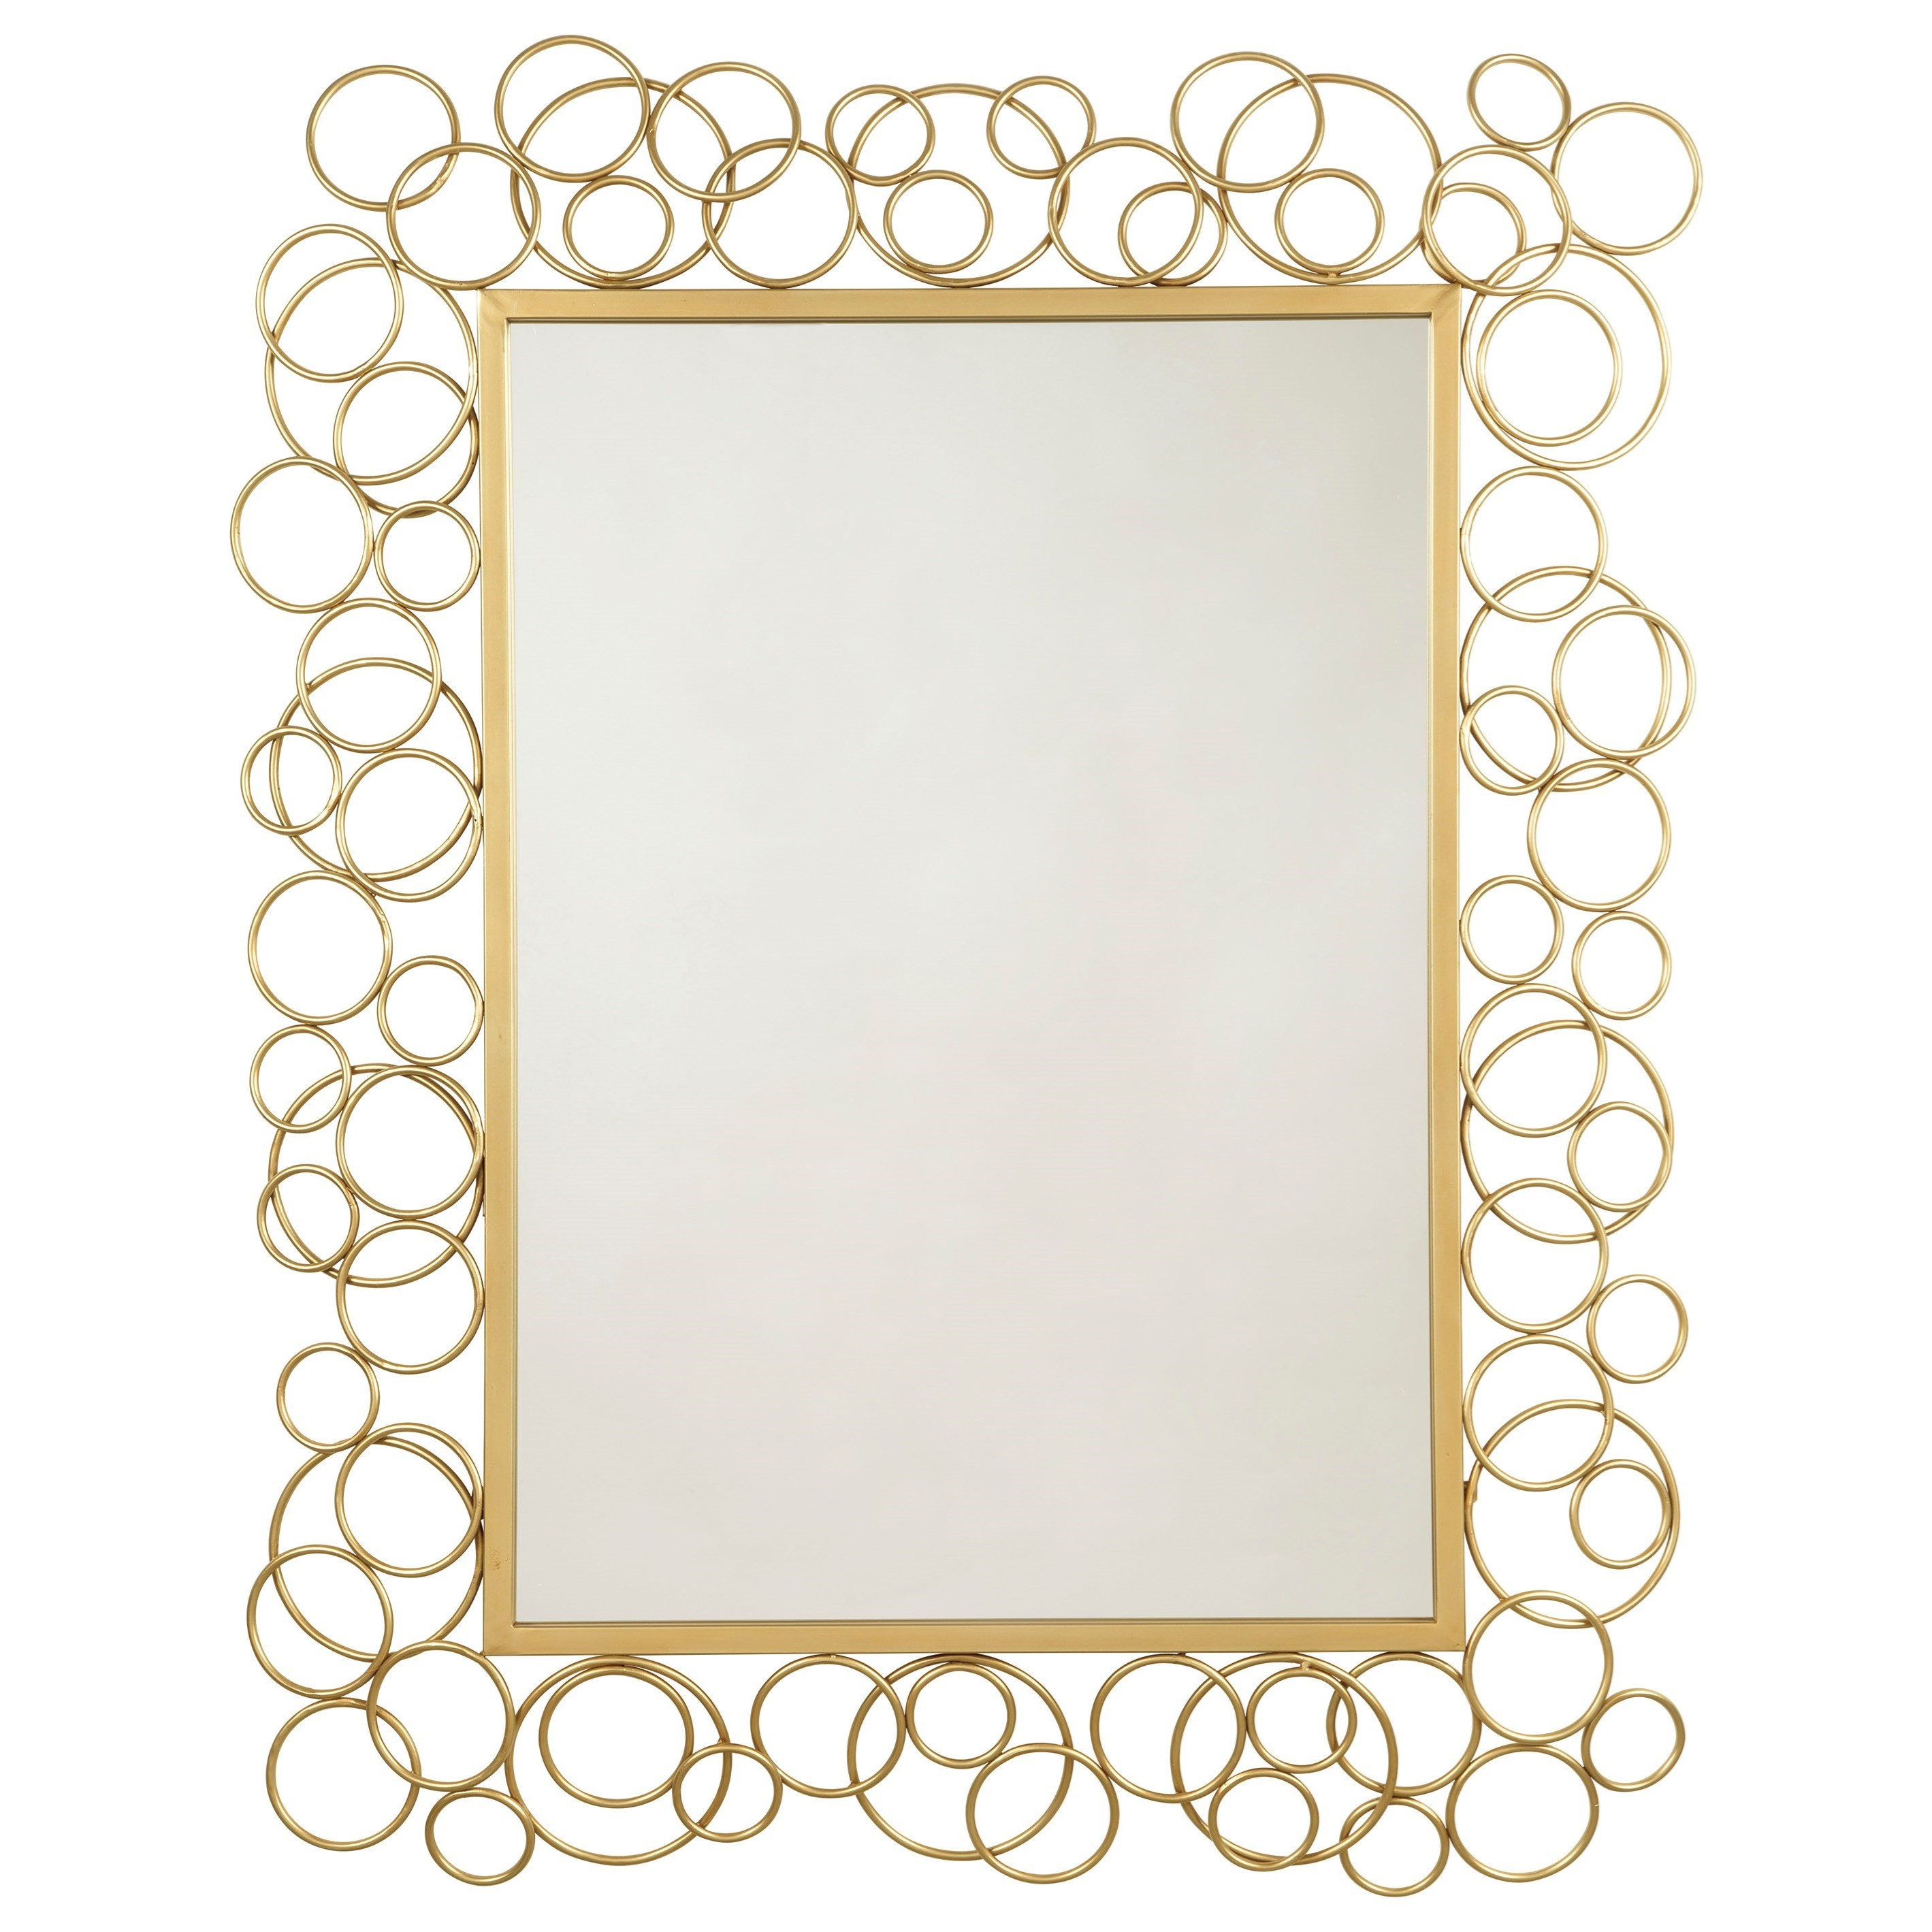 Signature Design by Ashley Accent Mirrors Dhaval Gold Finish Accent Mirror - Item Number: A8010104